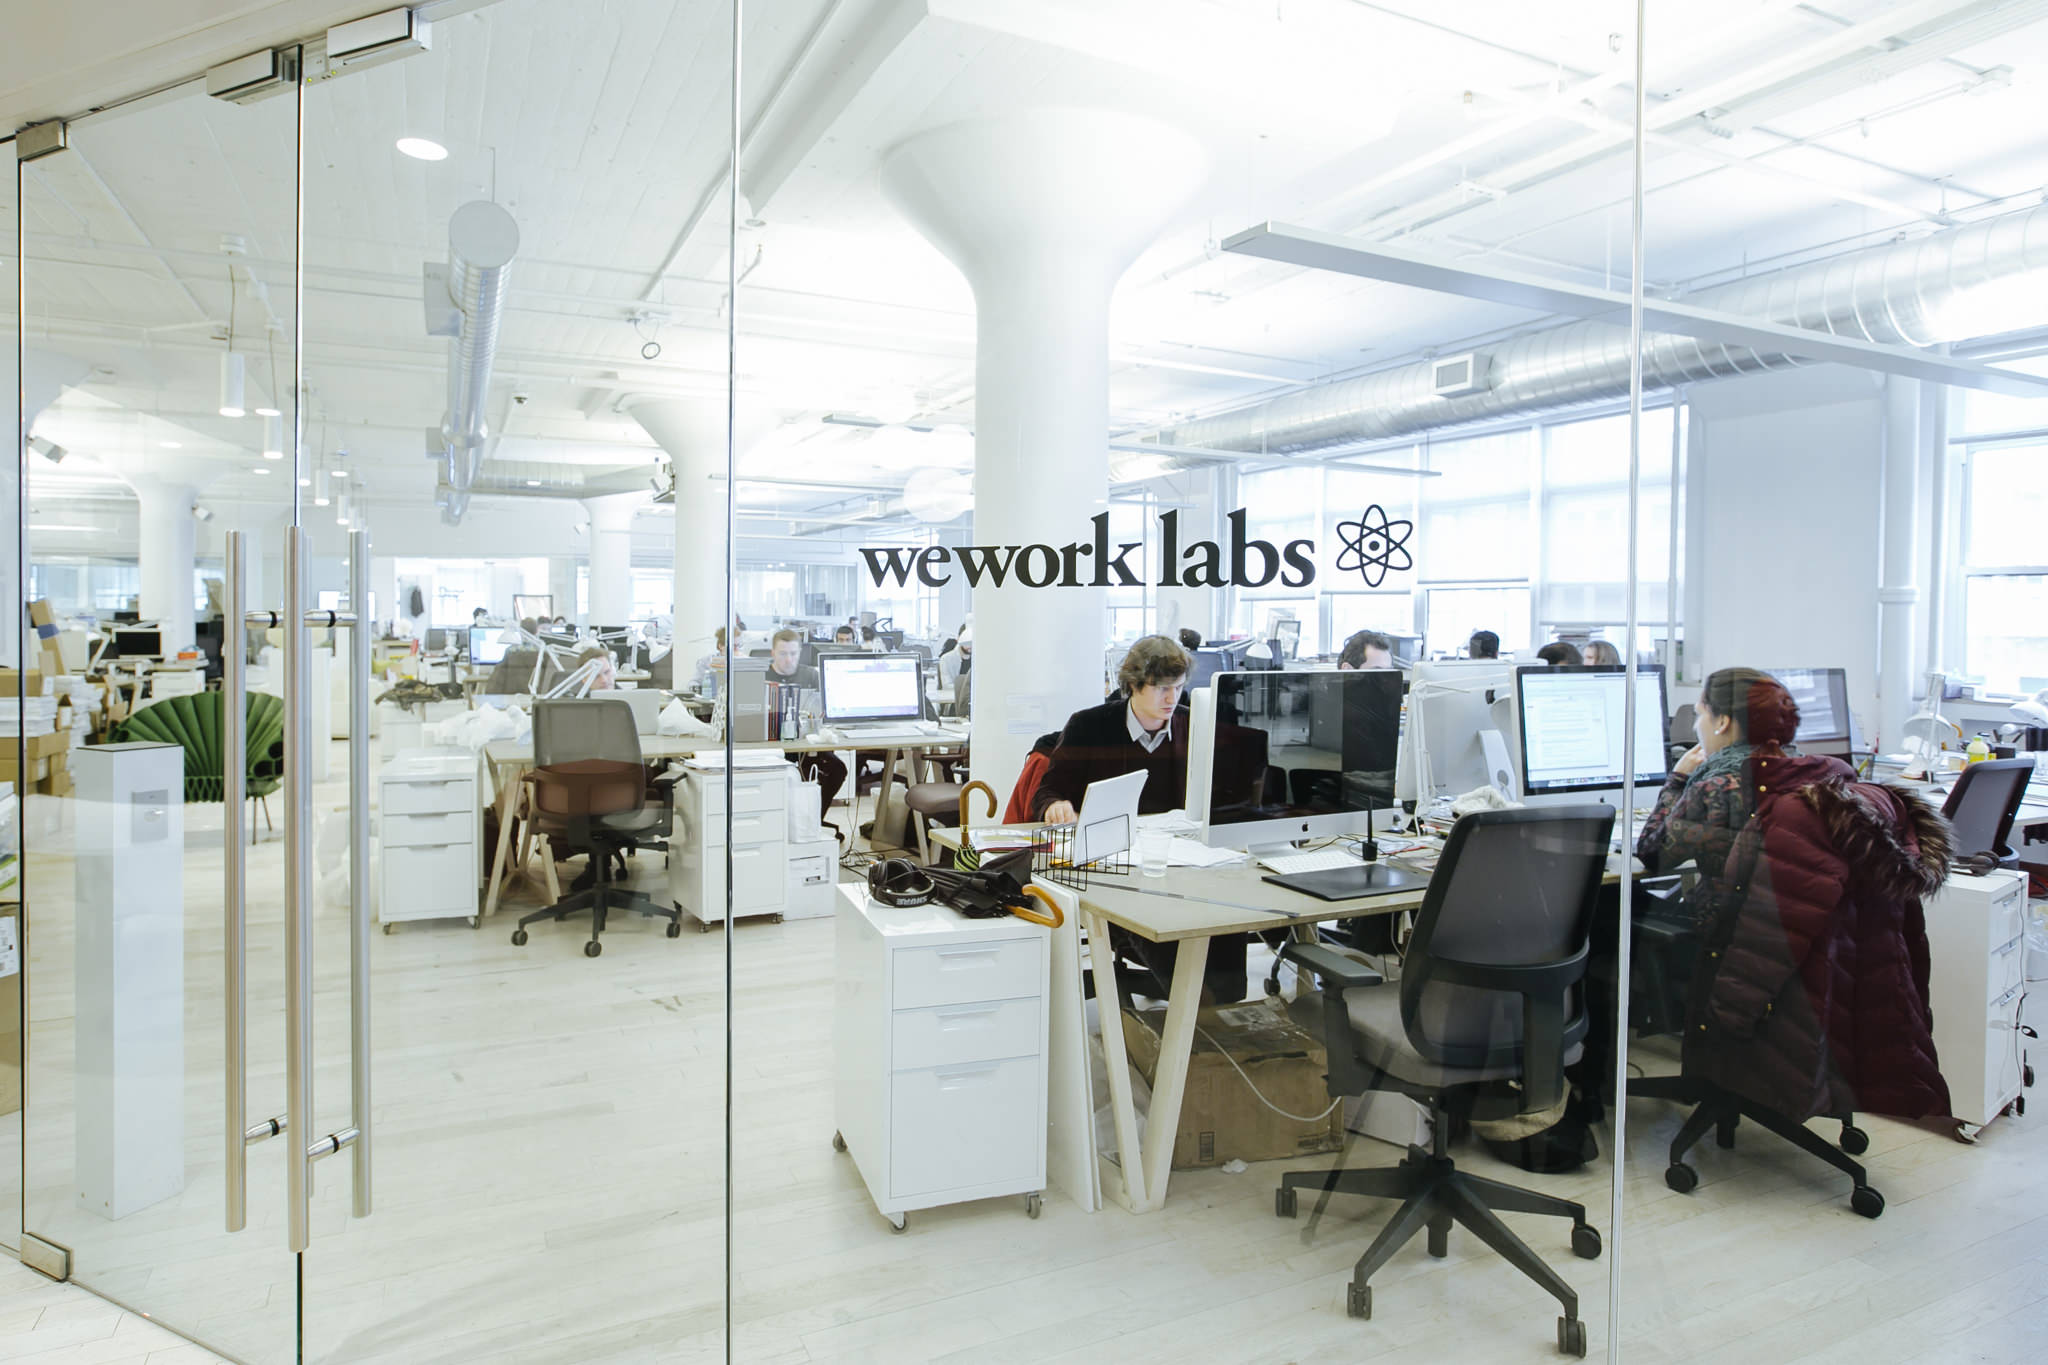 People working in the WeWork Labs at WeWork Varrick Street, New York. MEP designed by 2L Engineering.